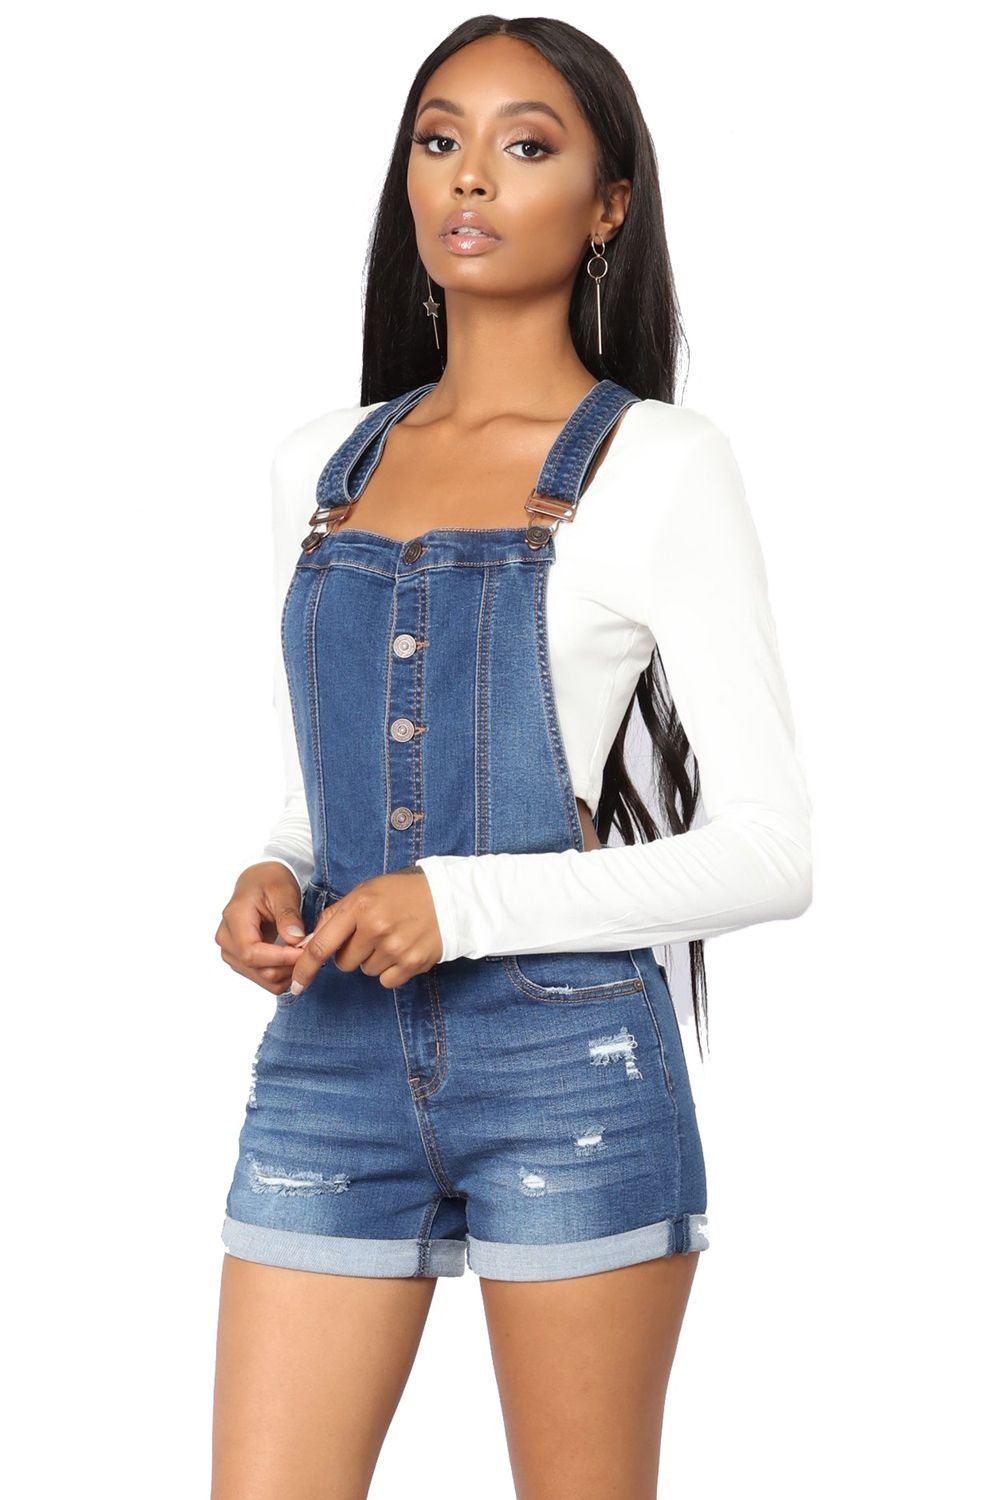 Destroyed Blue Shorts Overalls Women's Clothing